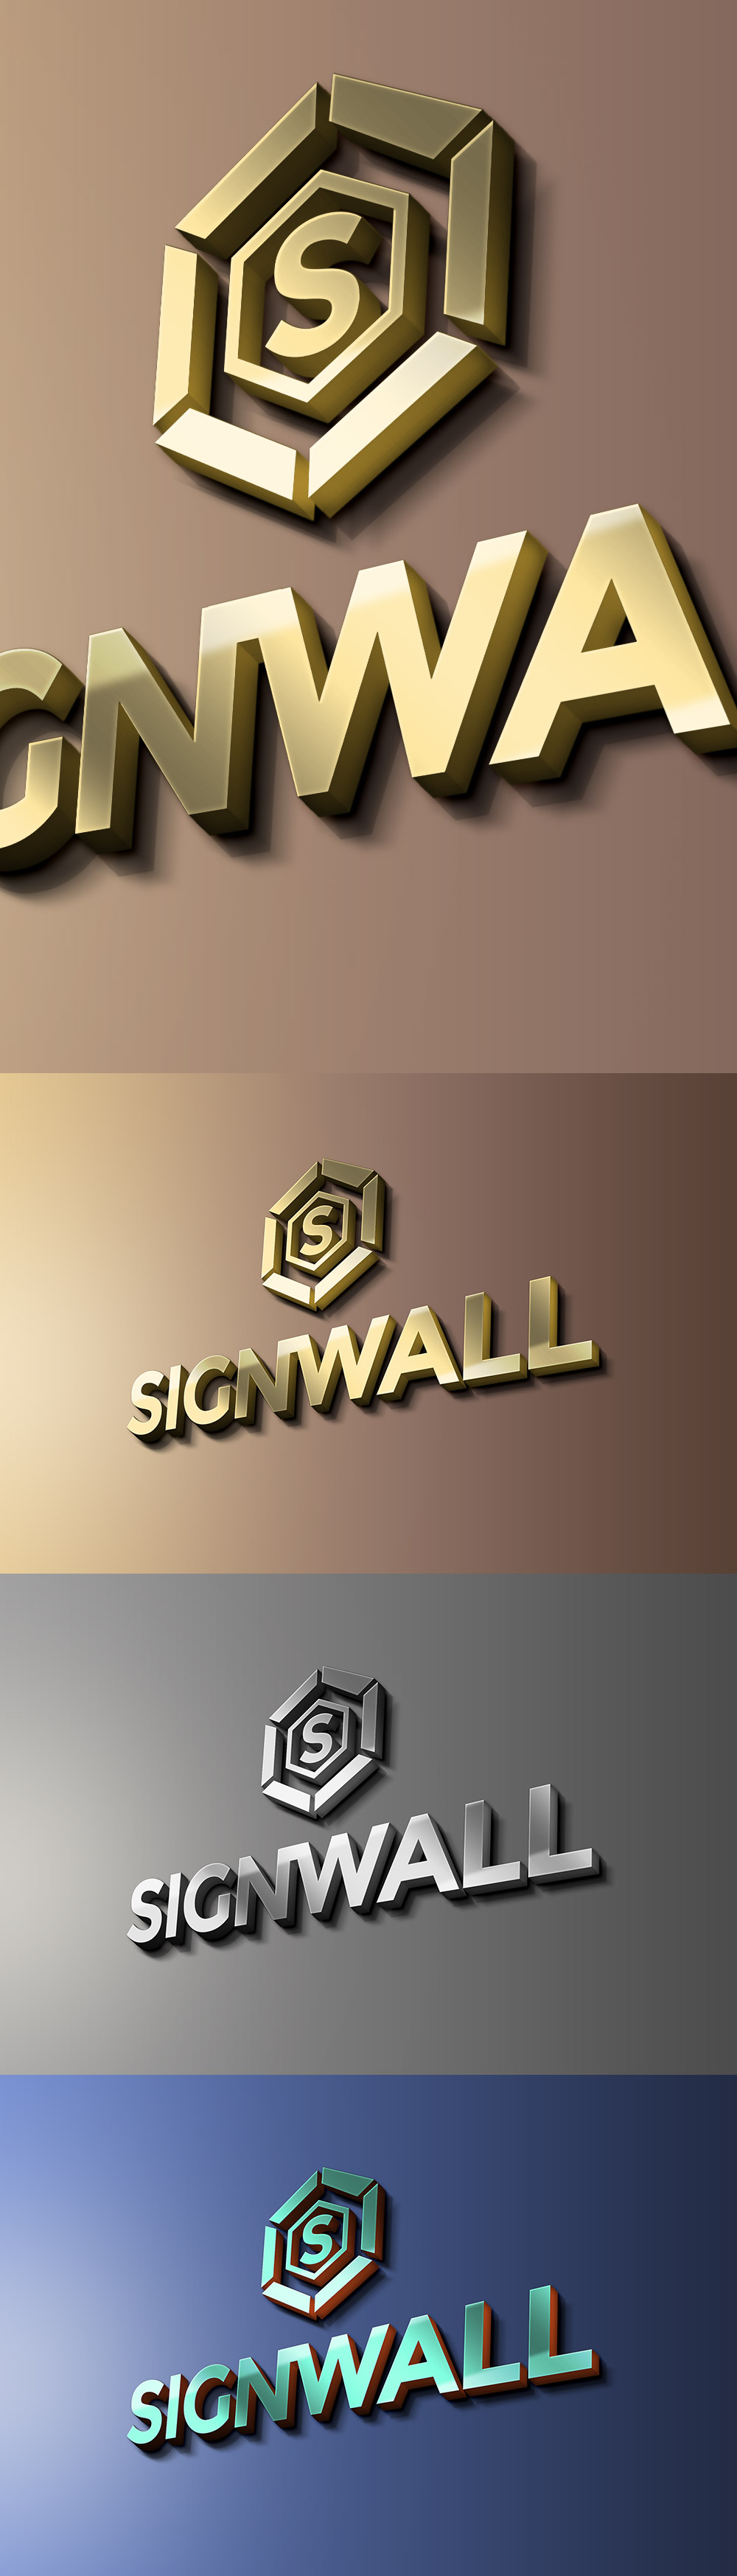 Sign Wall Logo Mockup